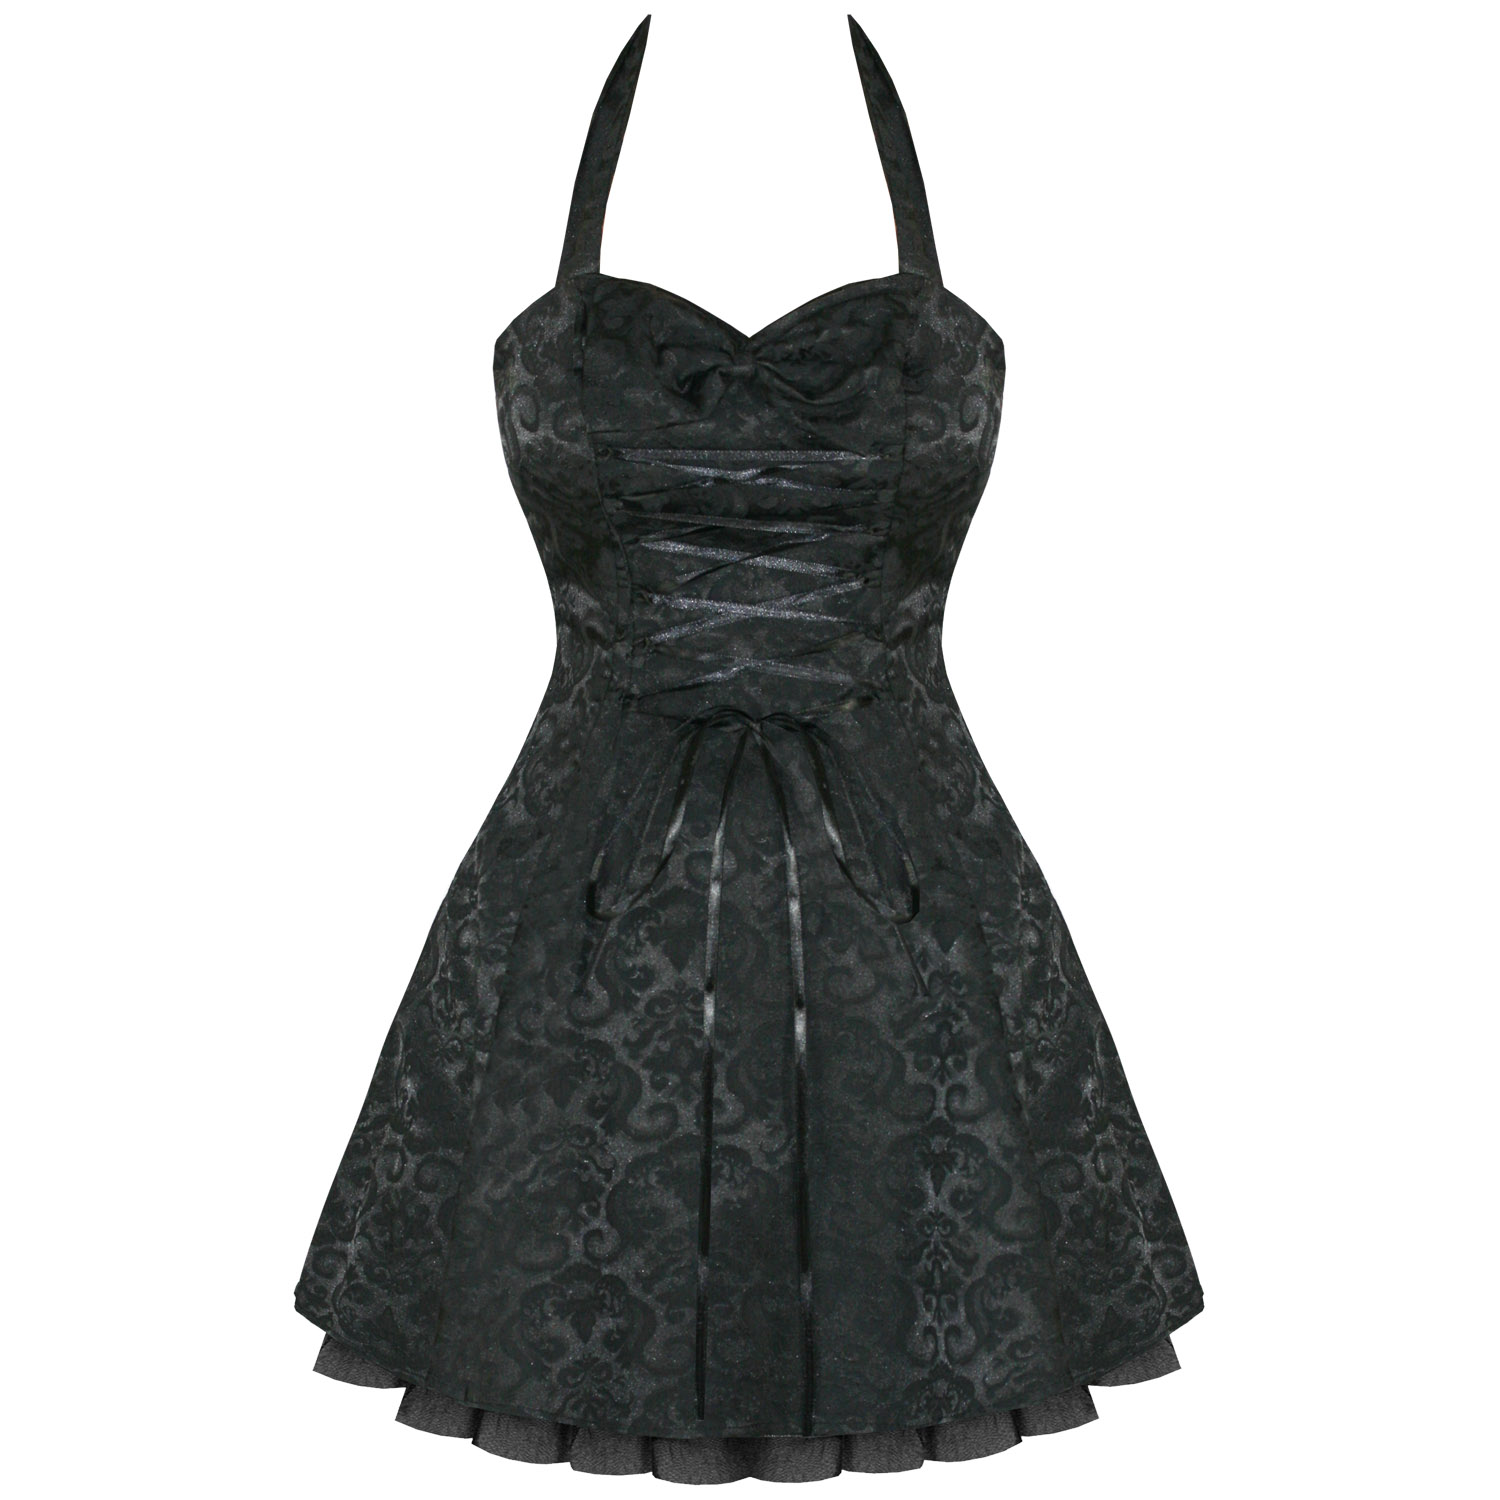 Black dress ebay - Image Is Loading Black Damask Gothic Steampunk Emo Party Prom Dress